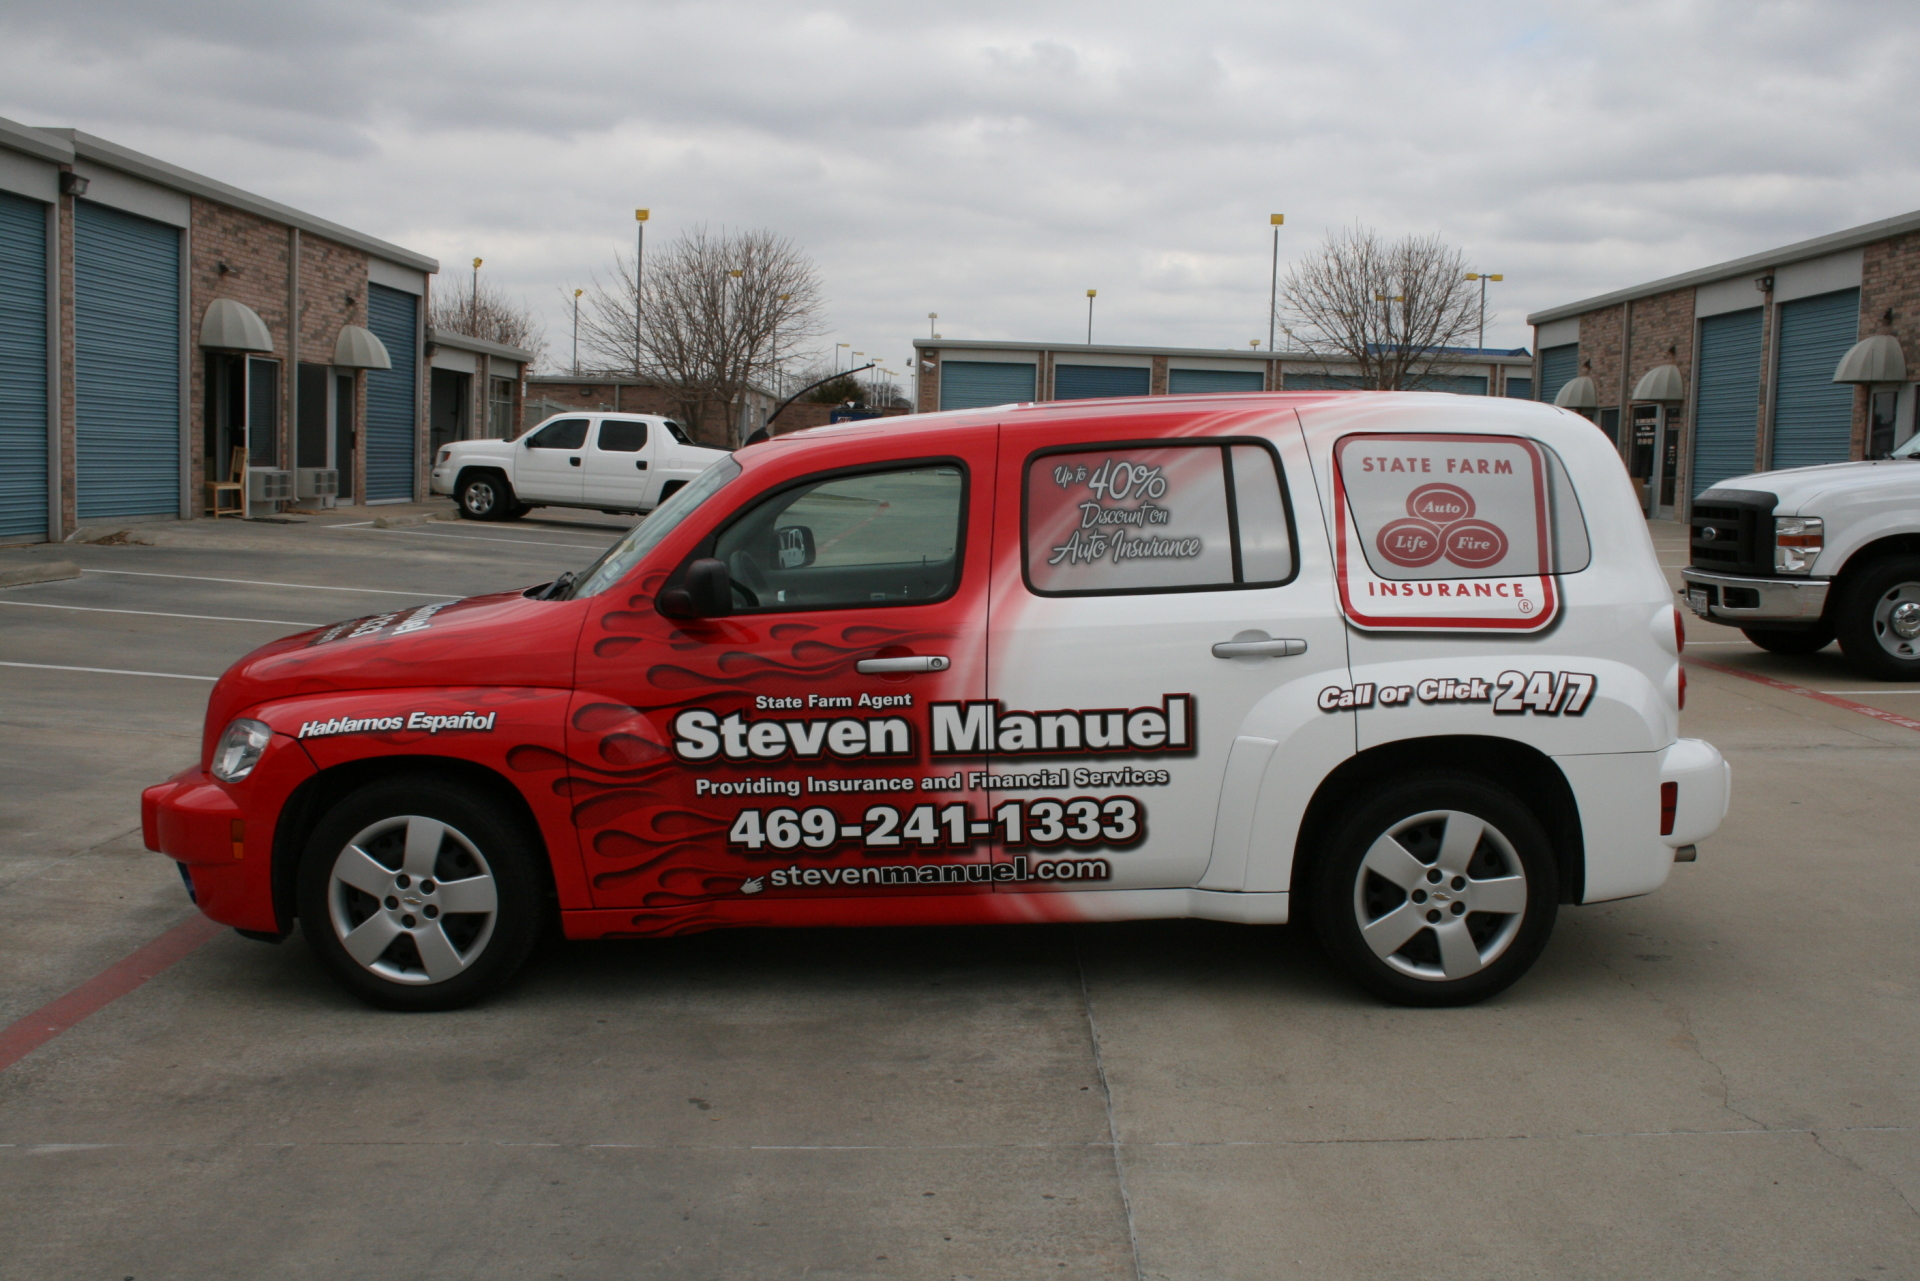 State Farm Agent Steven Manual , State Farm Vehicle Wraps, vehicle wraps dallas tx